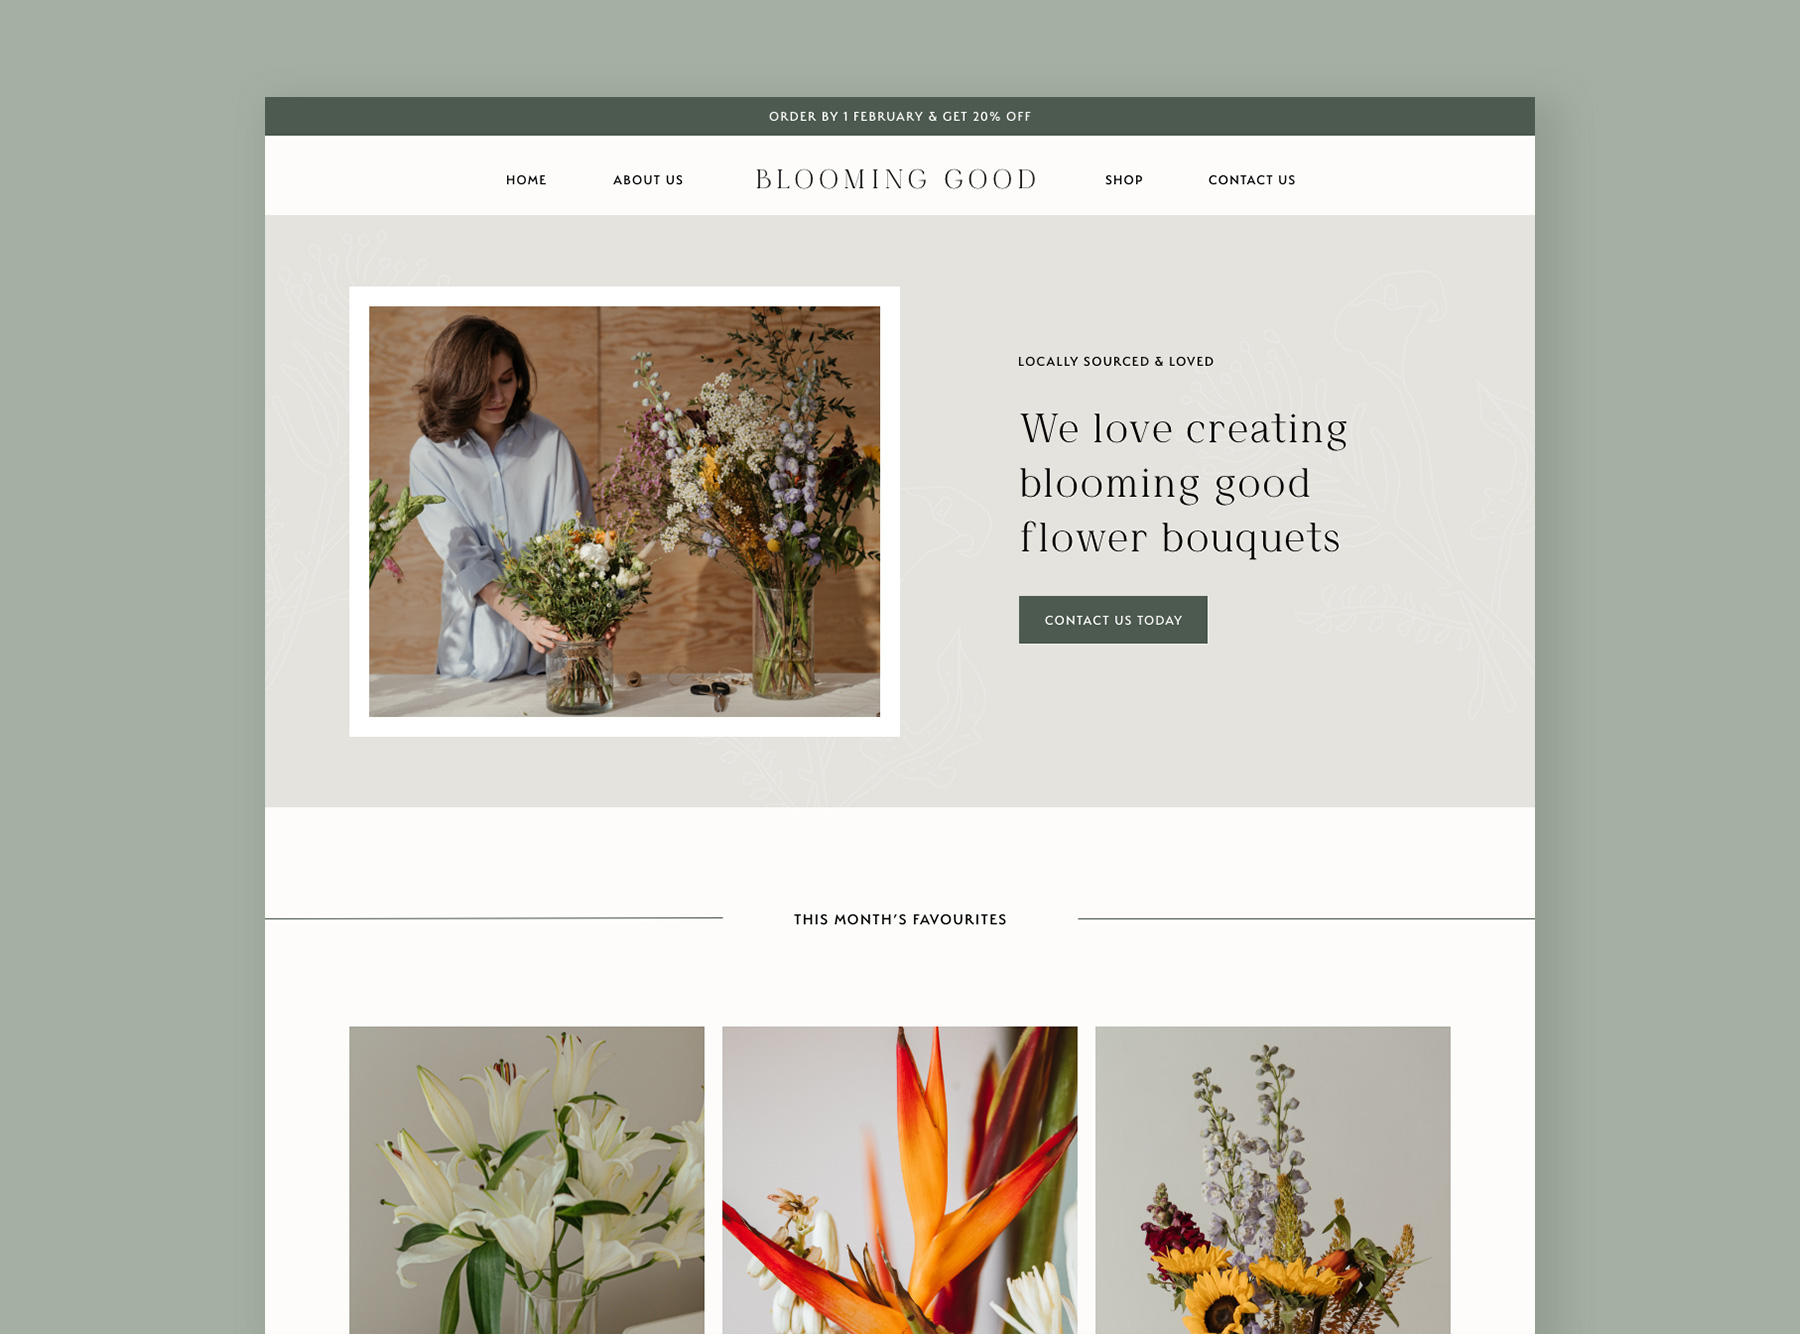 Webflow website mockup for a South African florist using an earthy, natural colour palette